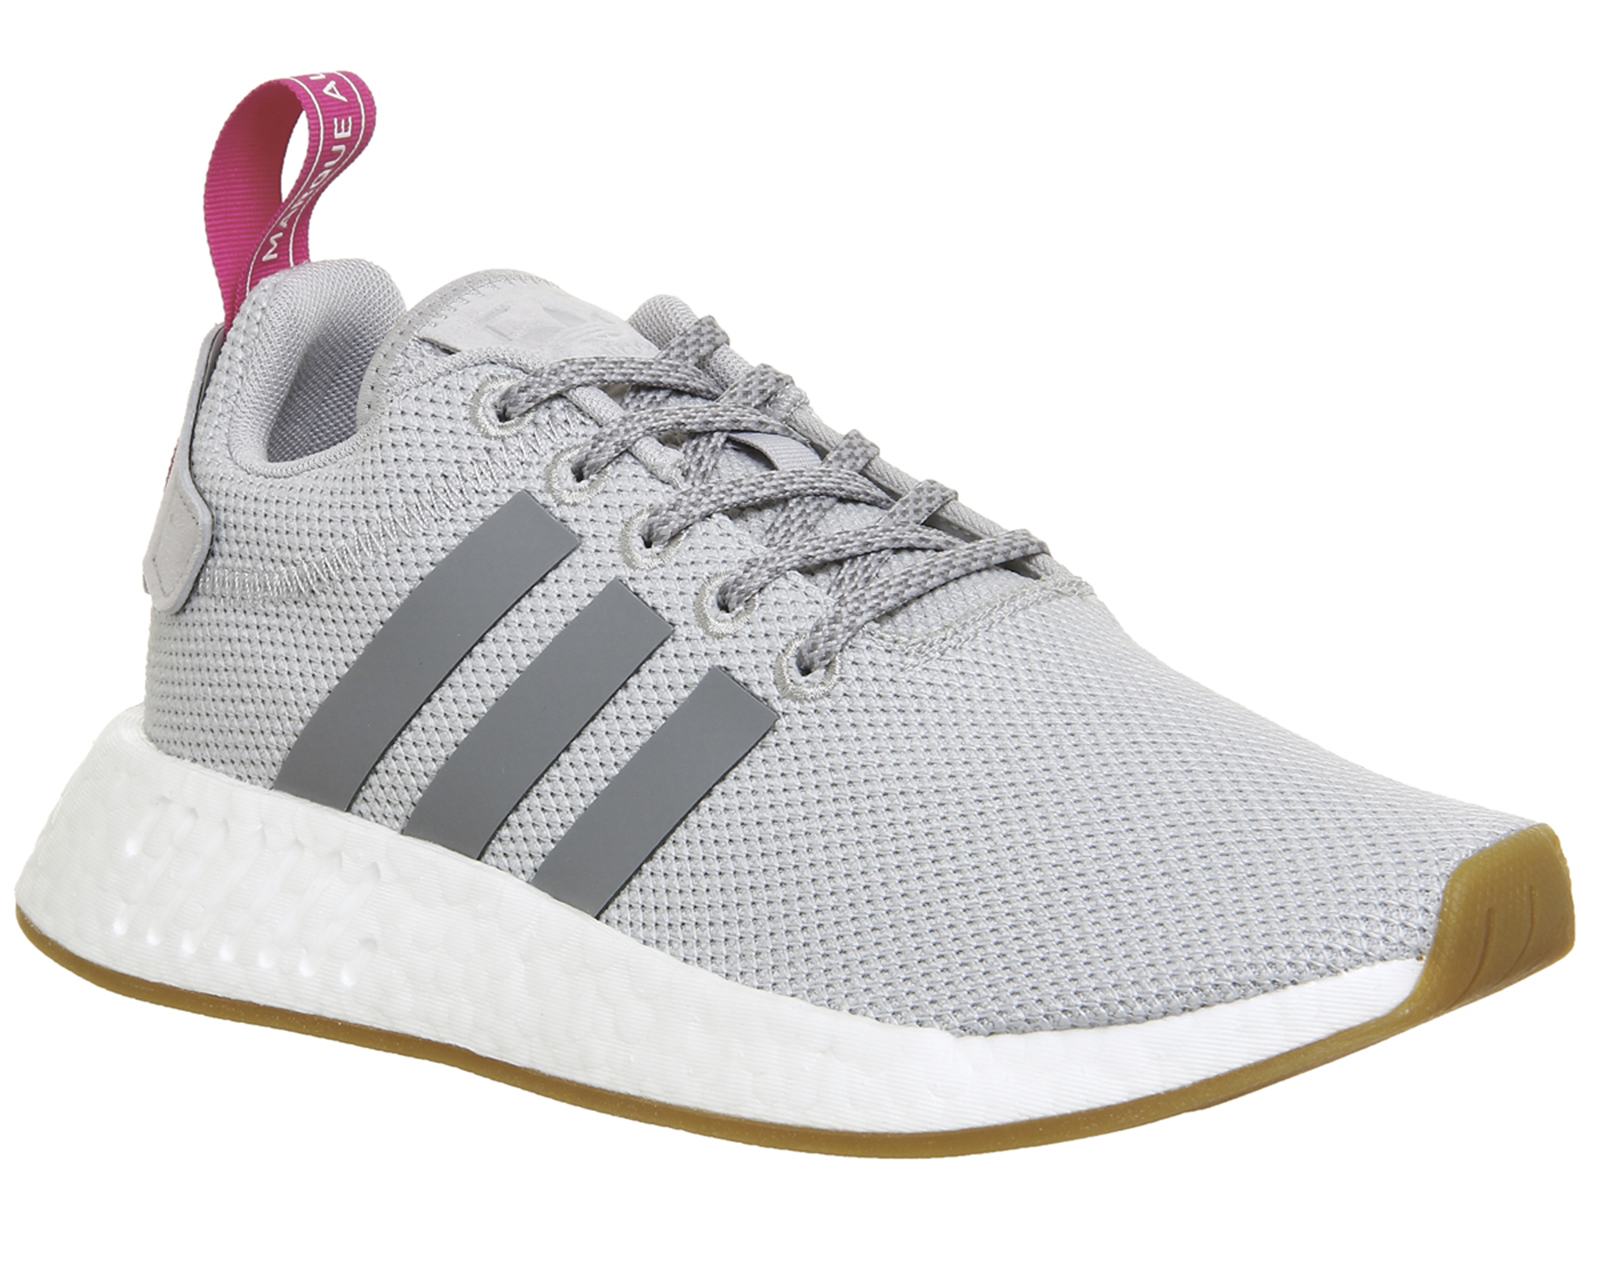 Sentinel Womens Adidas Nmd R2 Trainers GREY TWO PINK Trainers Shoes 434f4cdaa